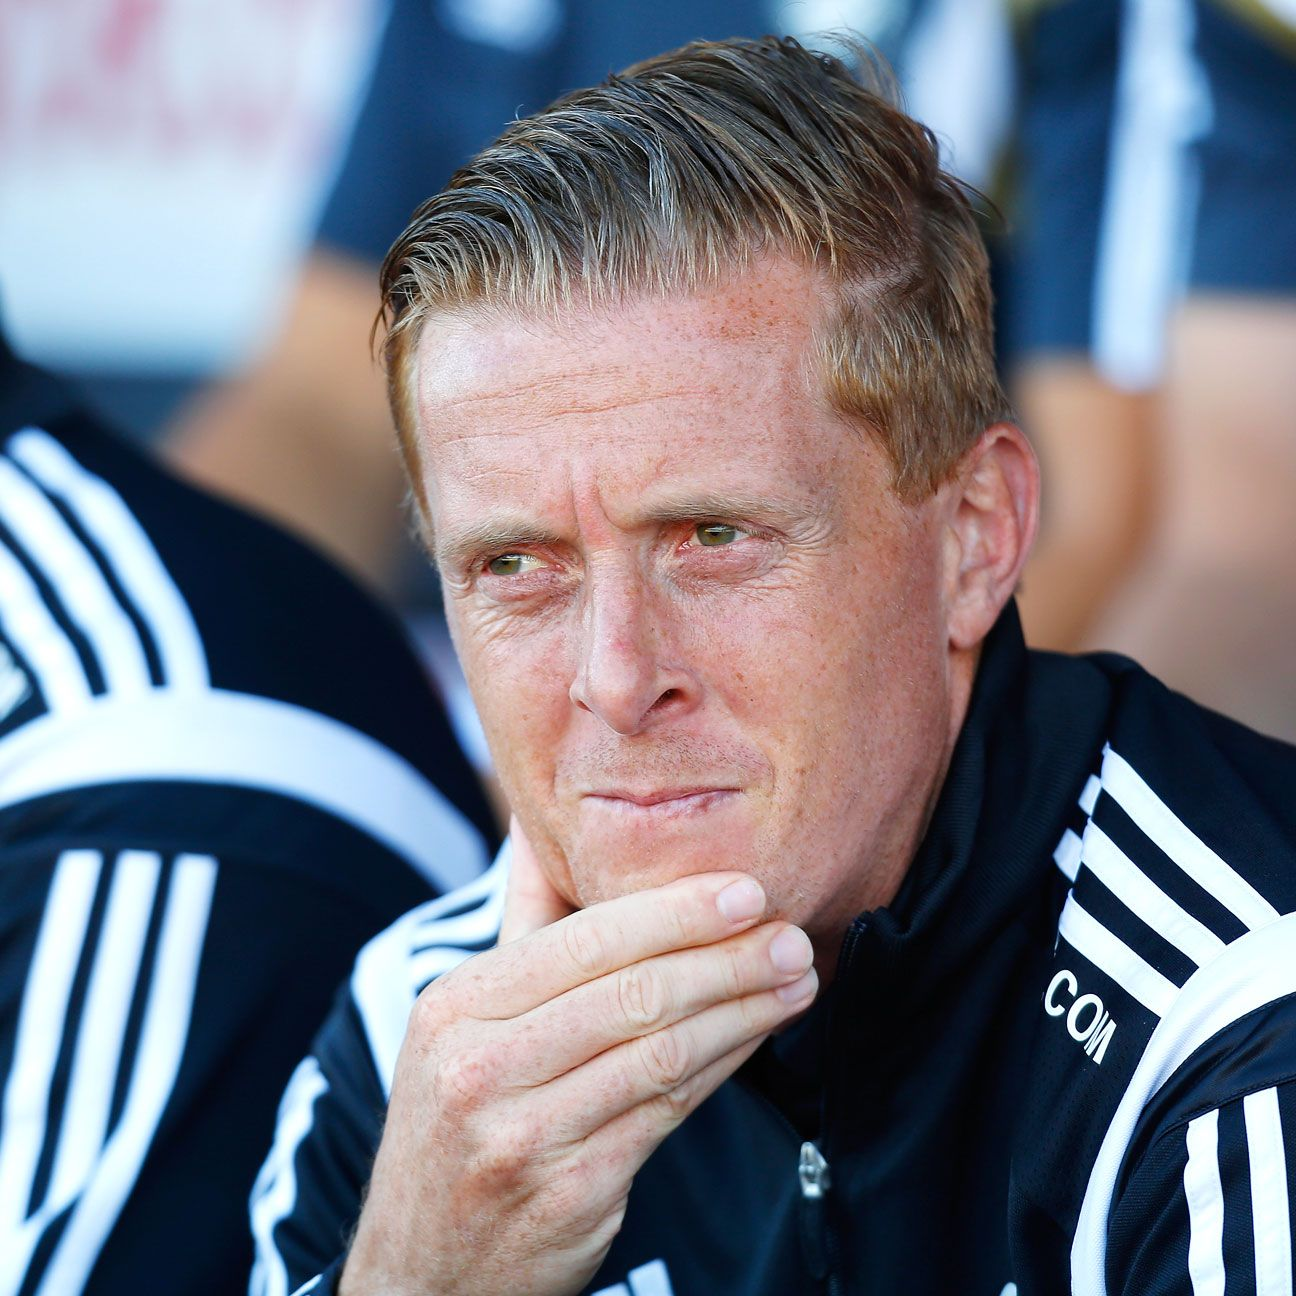 Manager Garry Monk has led Swansea to their highest ever points total in the Premier League.